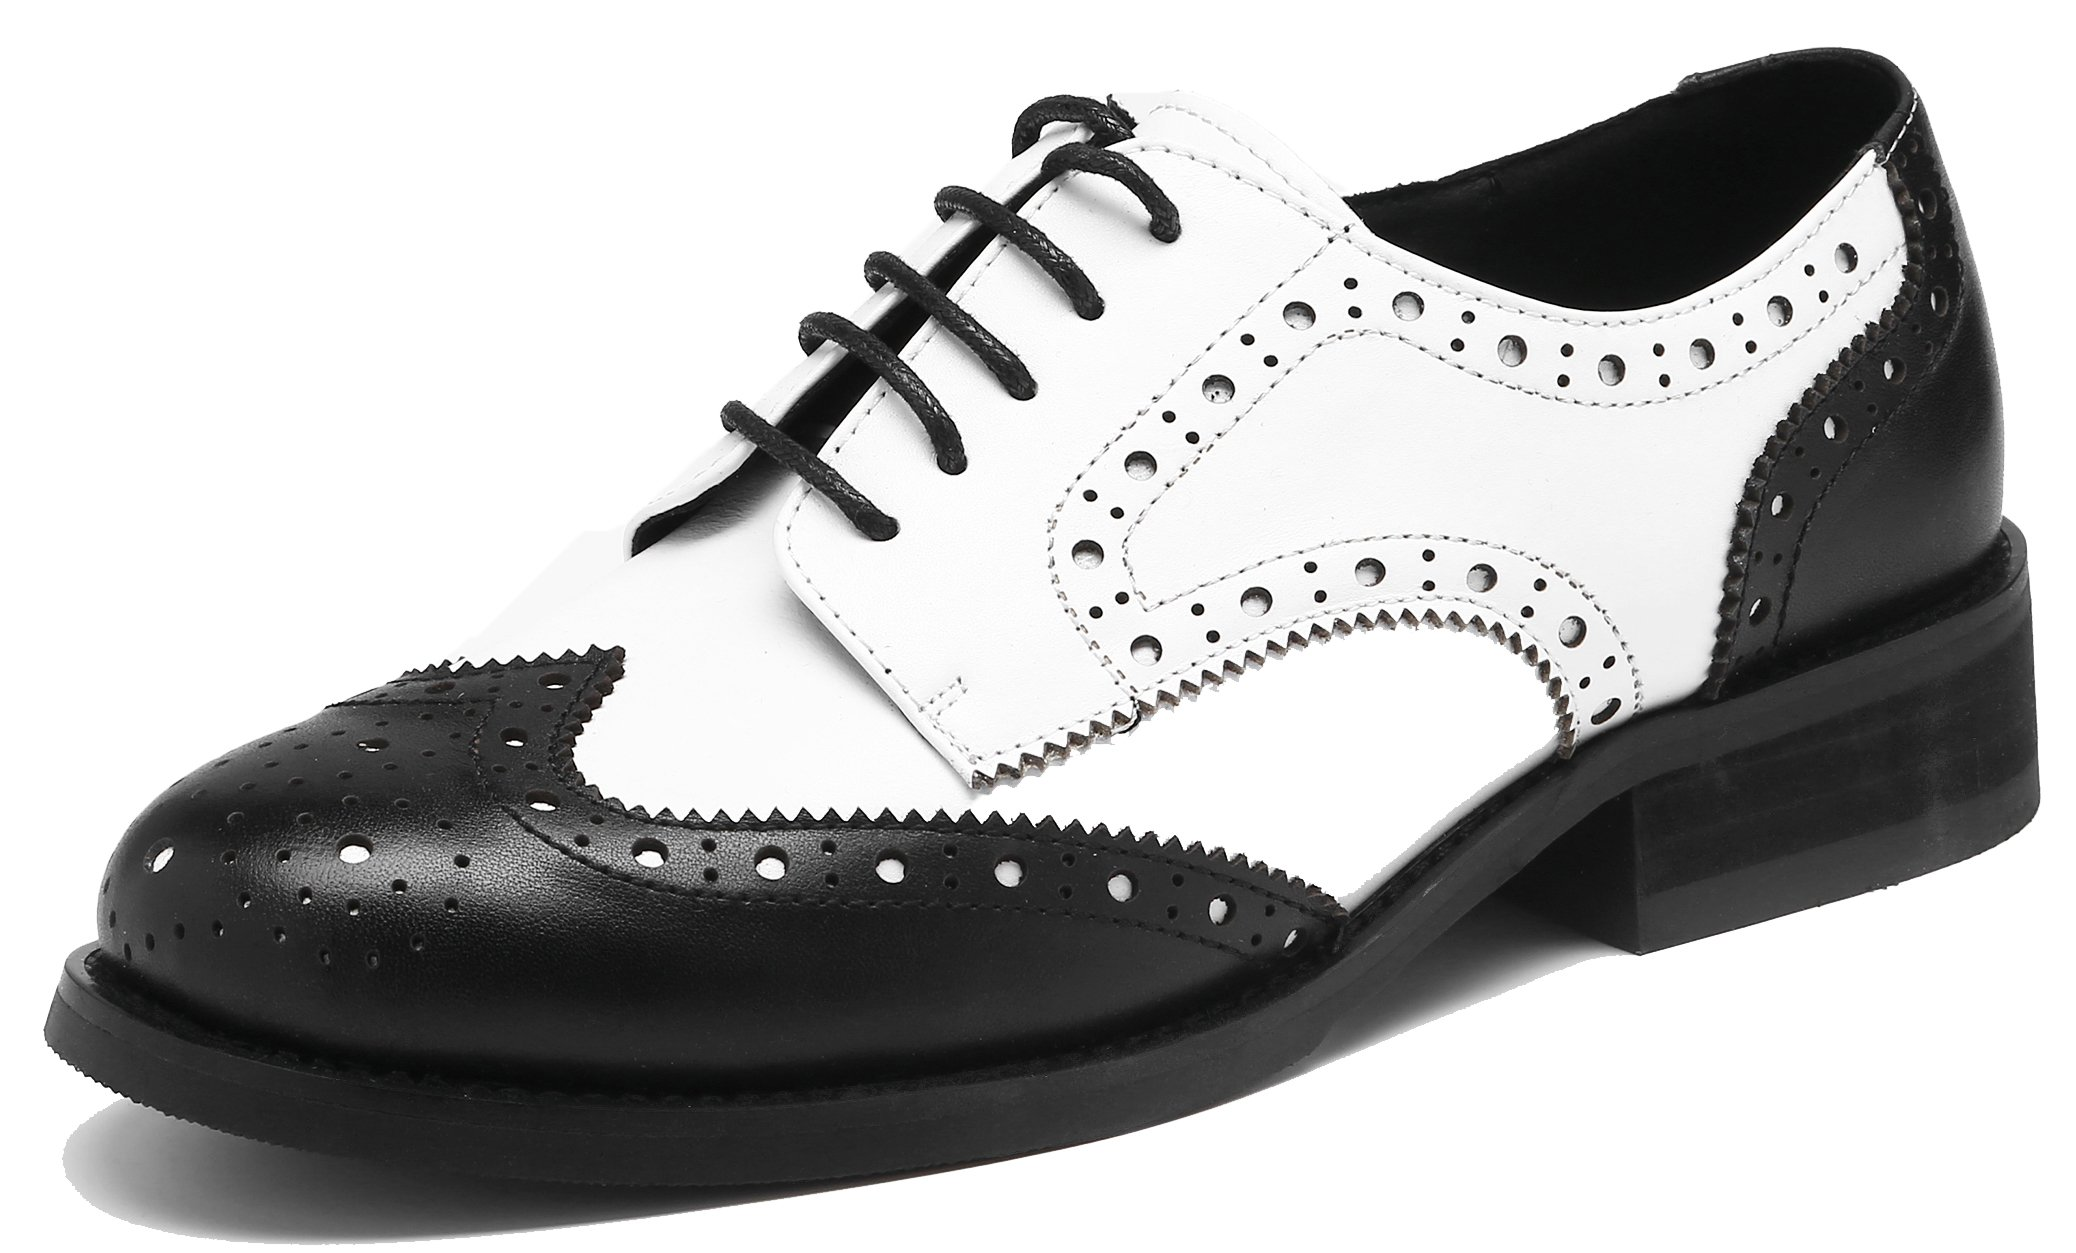 U-lite Women's Perforated Lace-up Wingtip Leather Flat Oxfords Vintage Oxford Shoes Brogues (6.5, Black White)